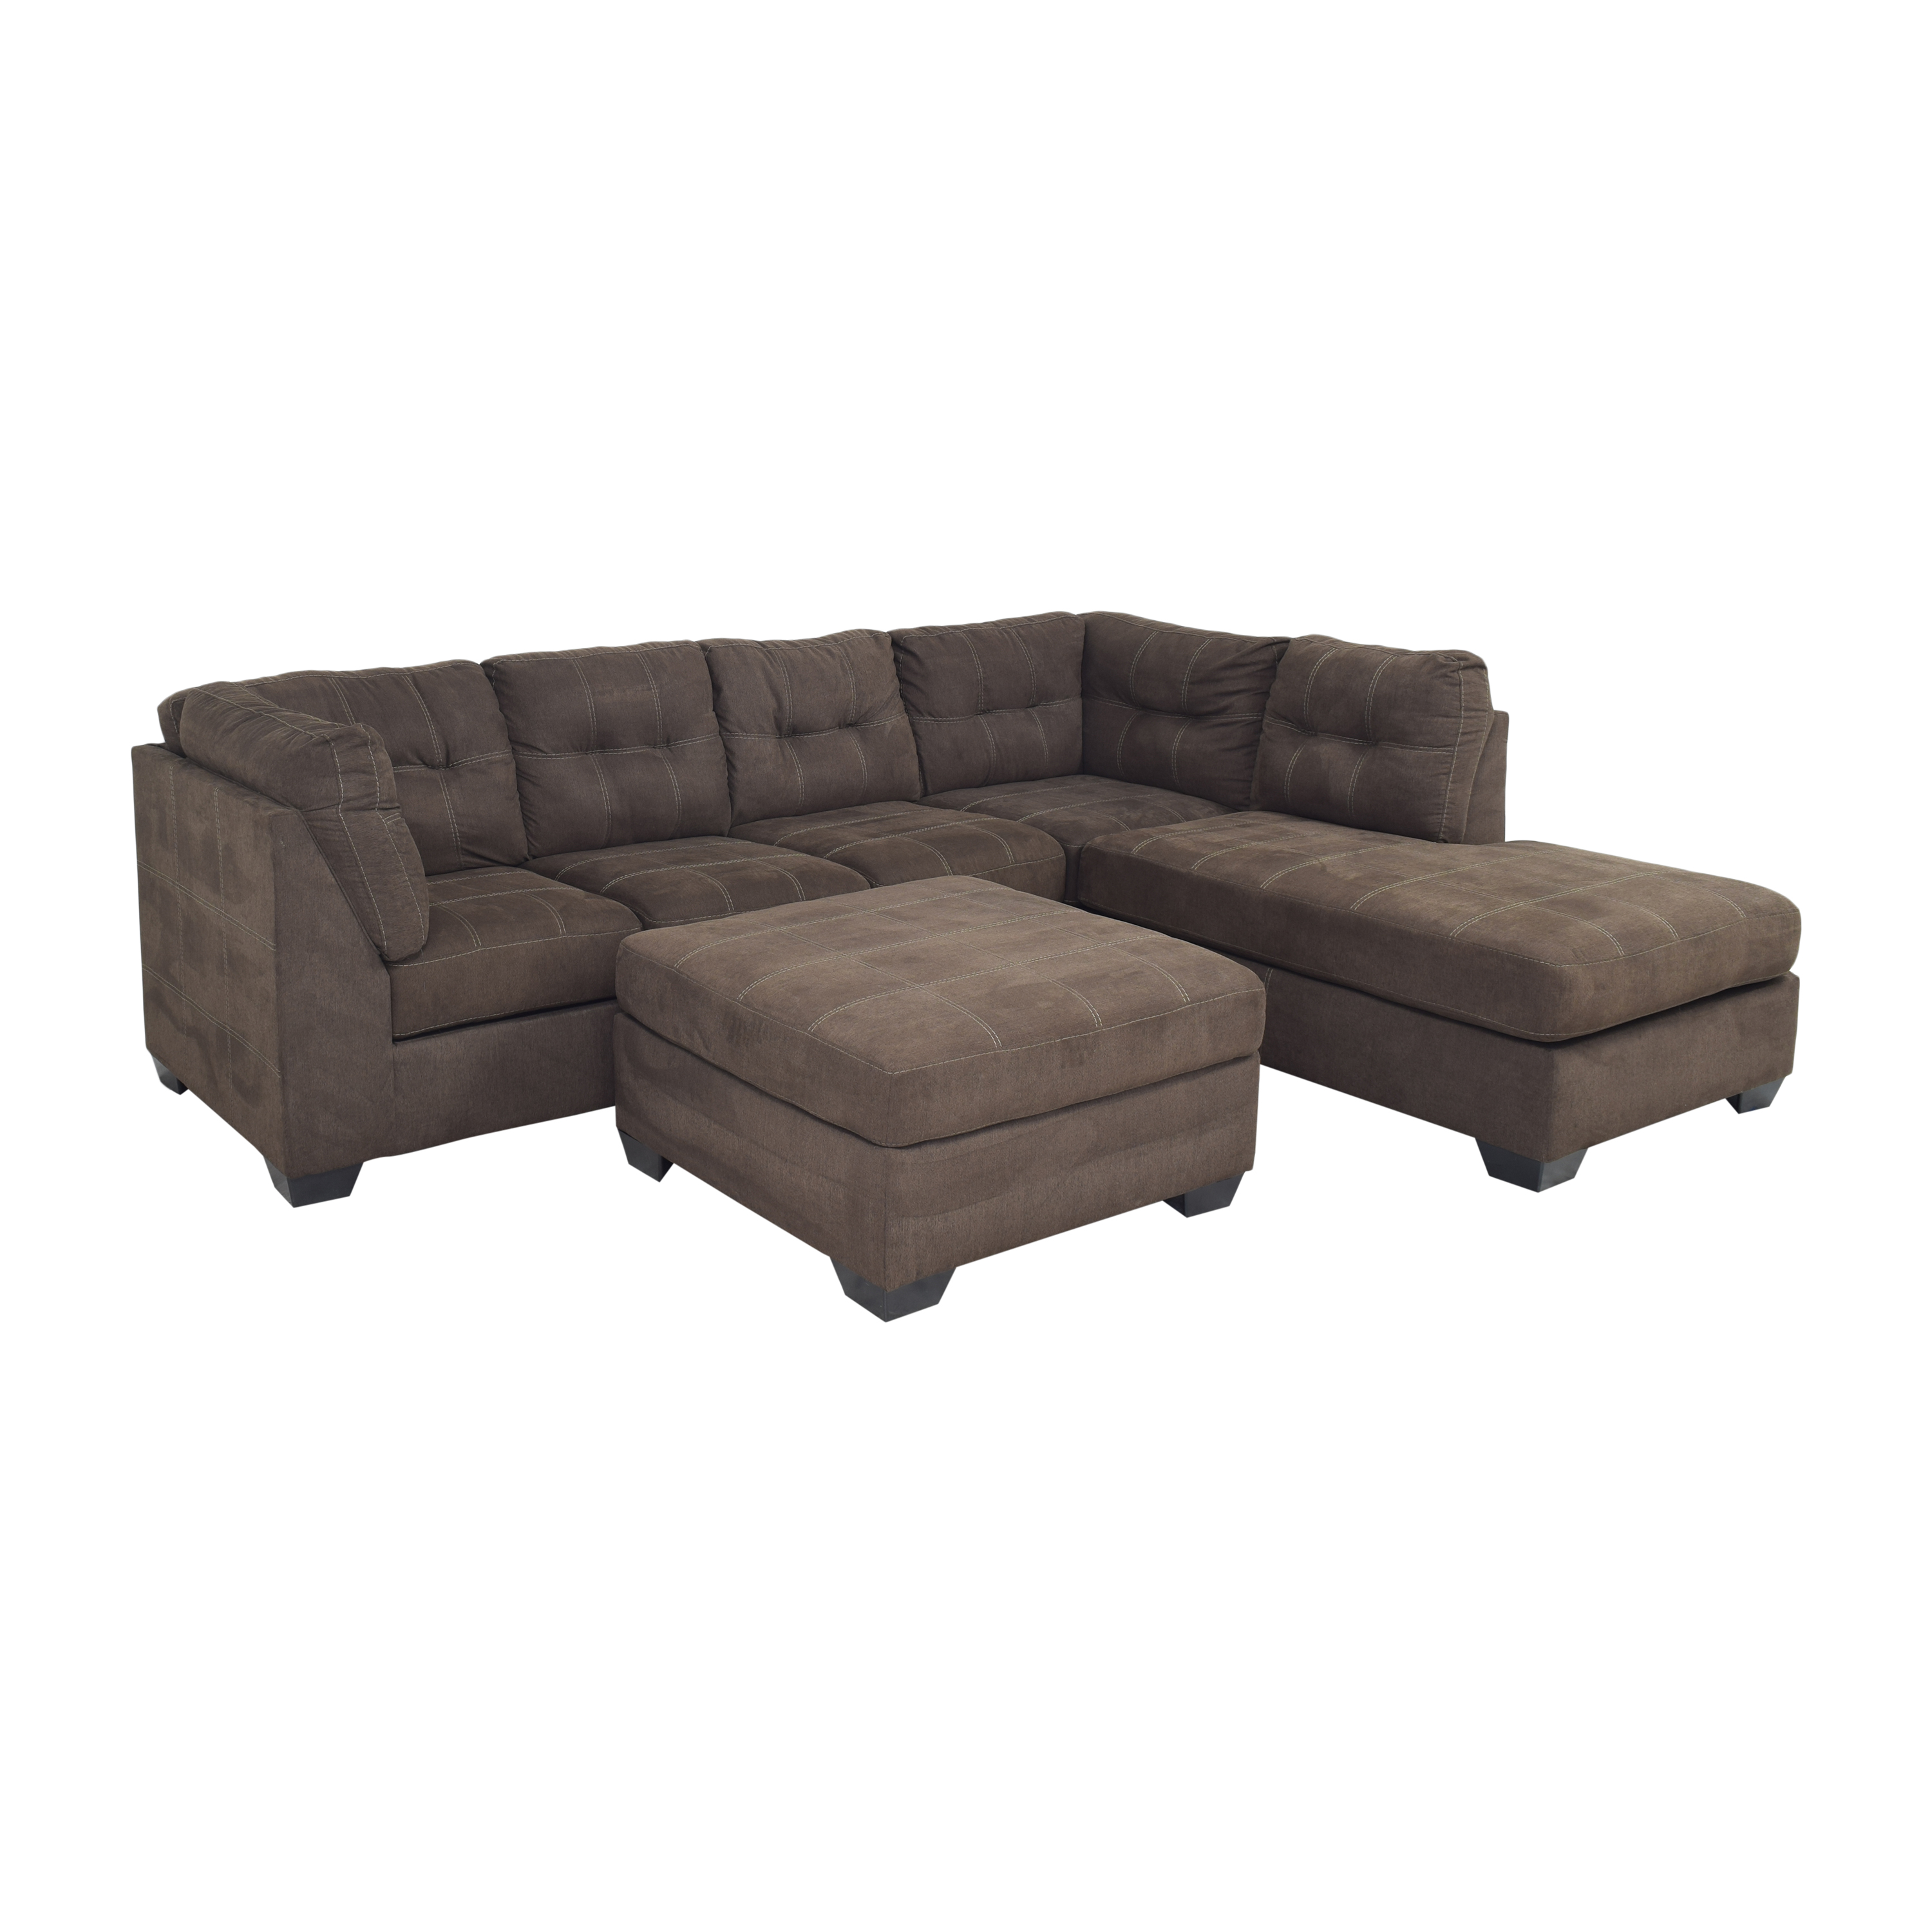 Ashley Furniture Ashley Furniture Pitkin Two-Piece Chaise Sectional with Ottoman